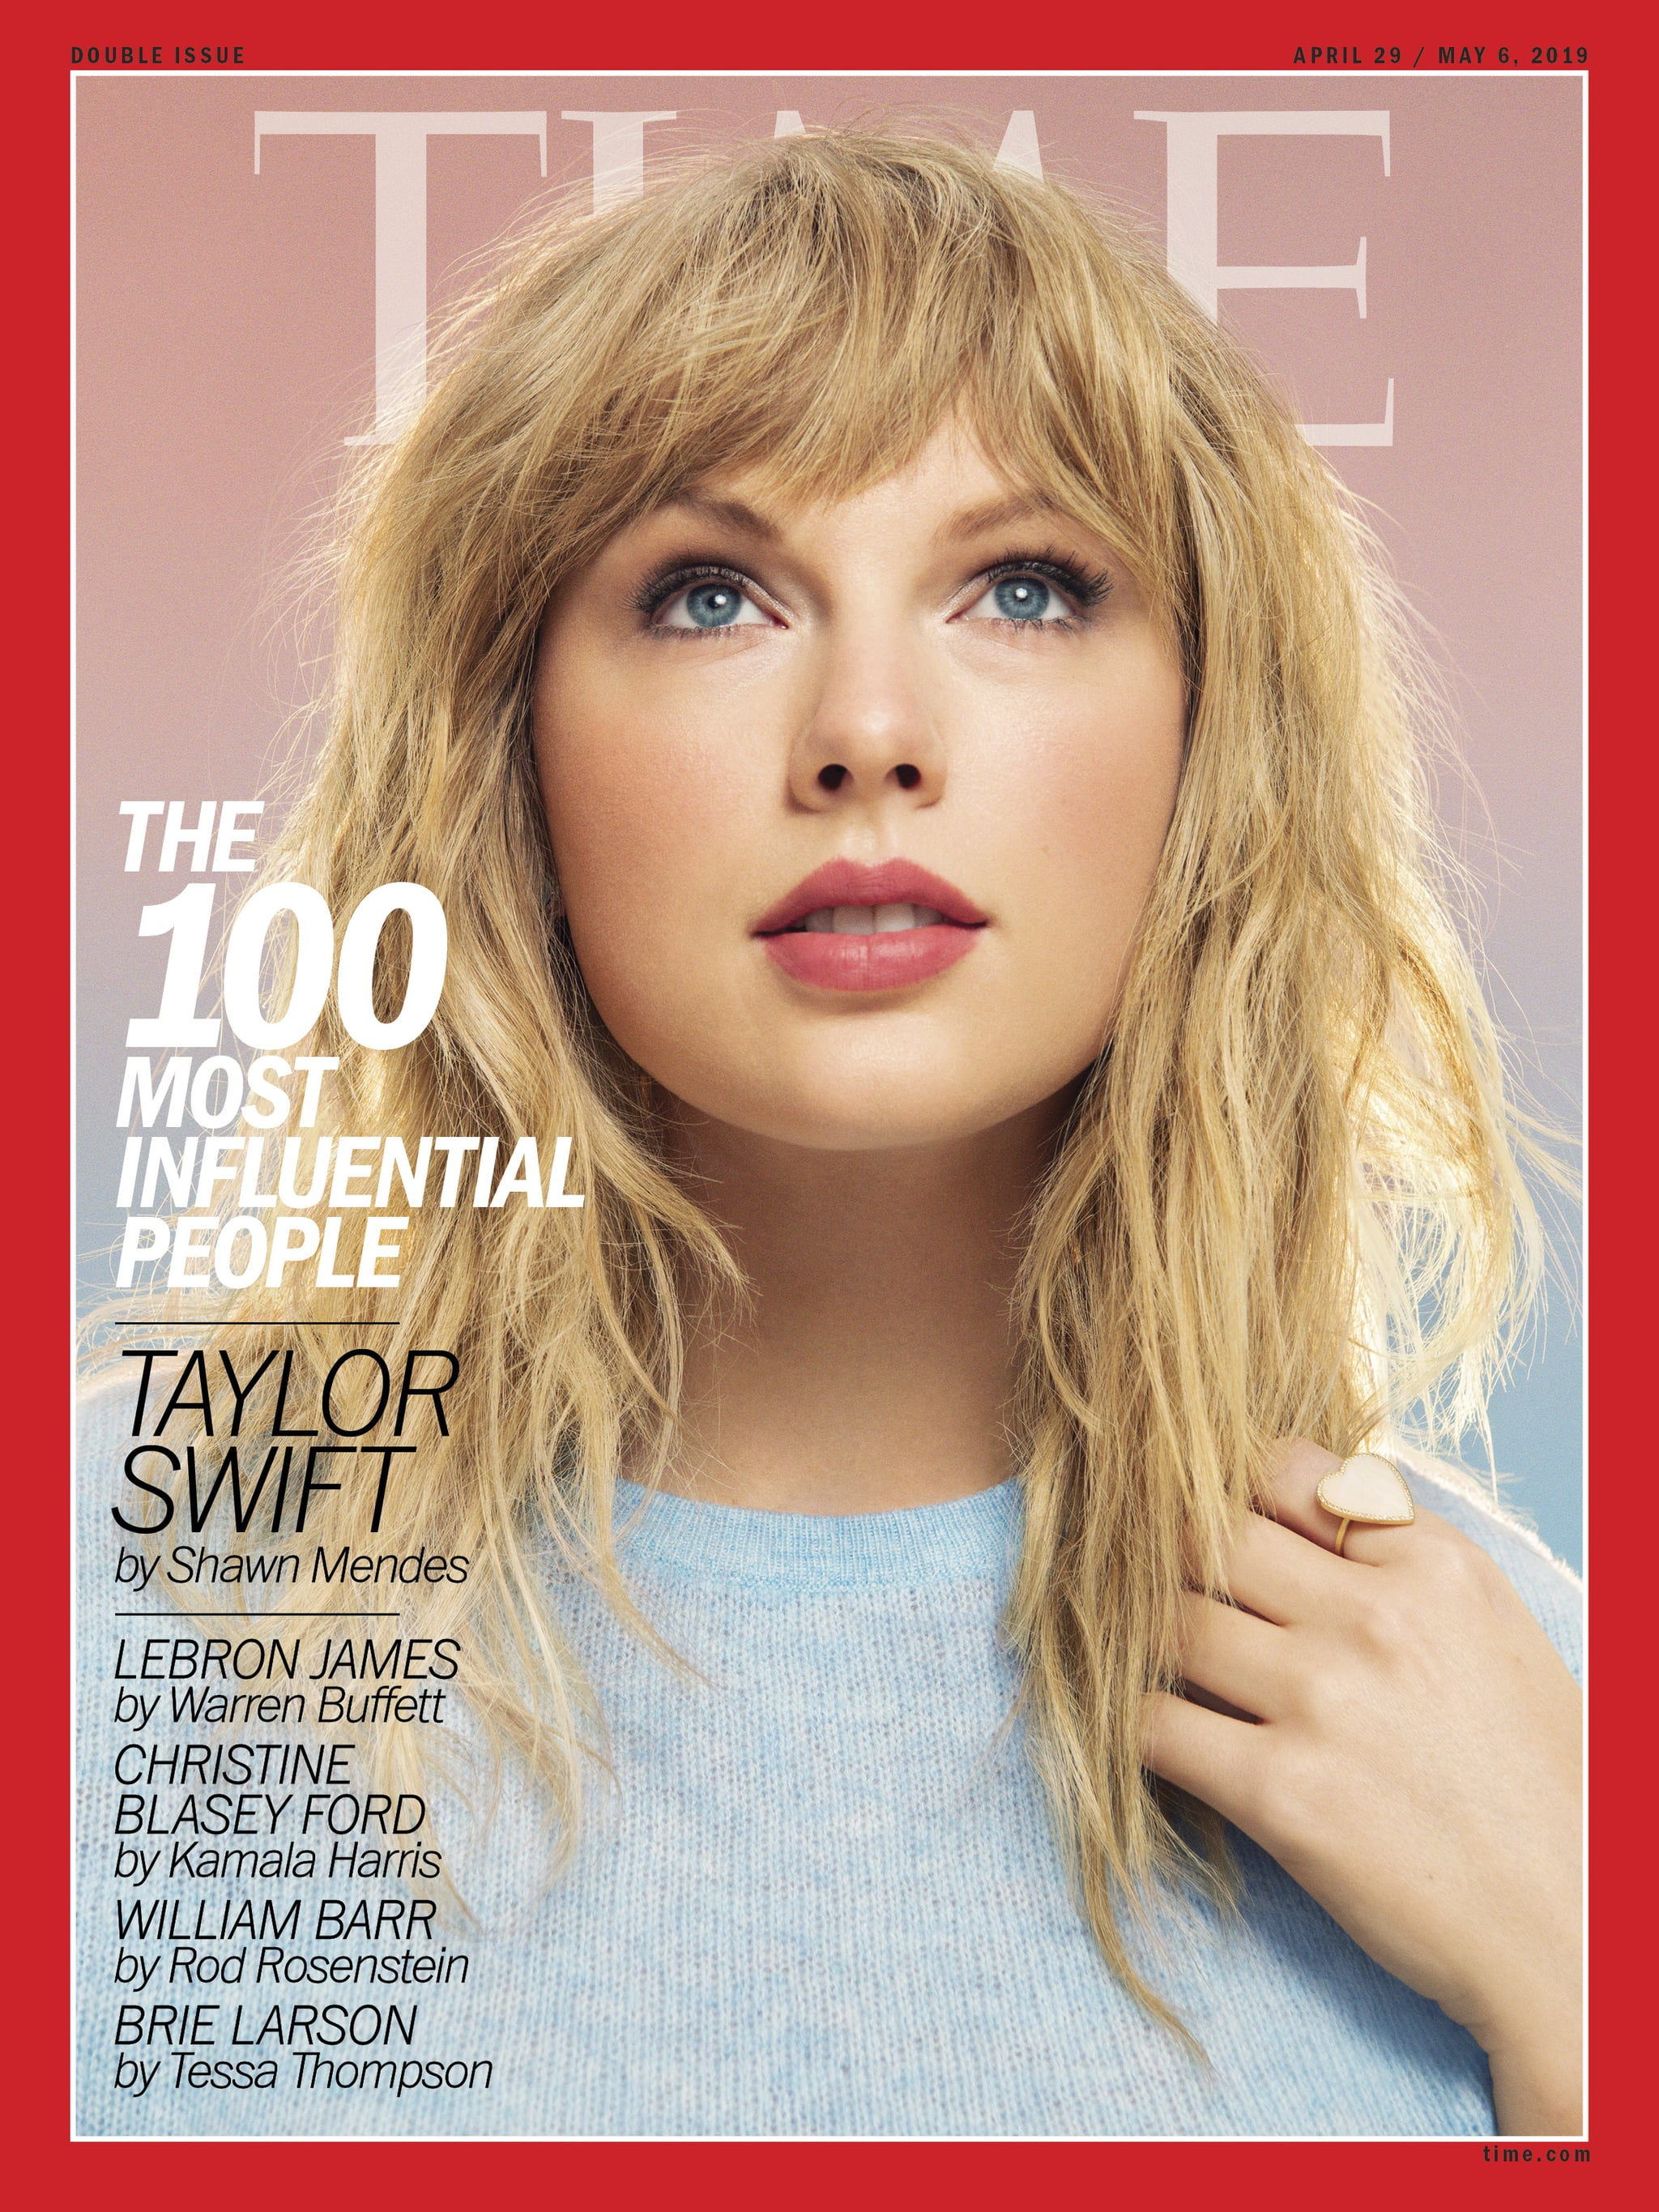 Beautiful Famous Singer Taylor Swift Modeling For TIME Magazine Modeling As One Of The Highest Paid Singers In The World.